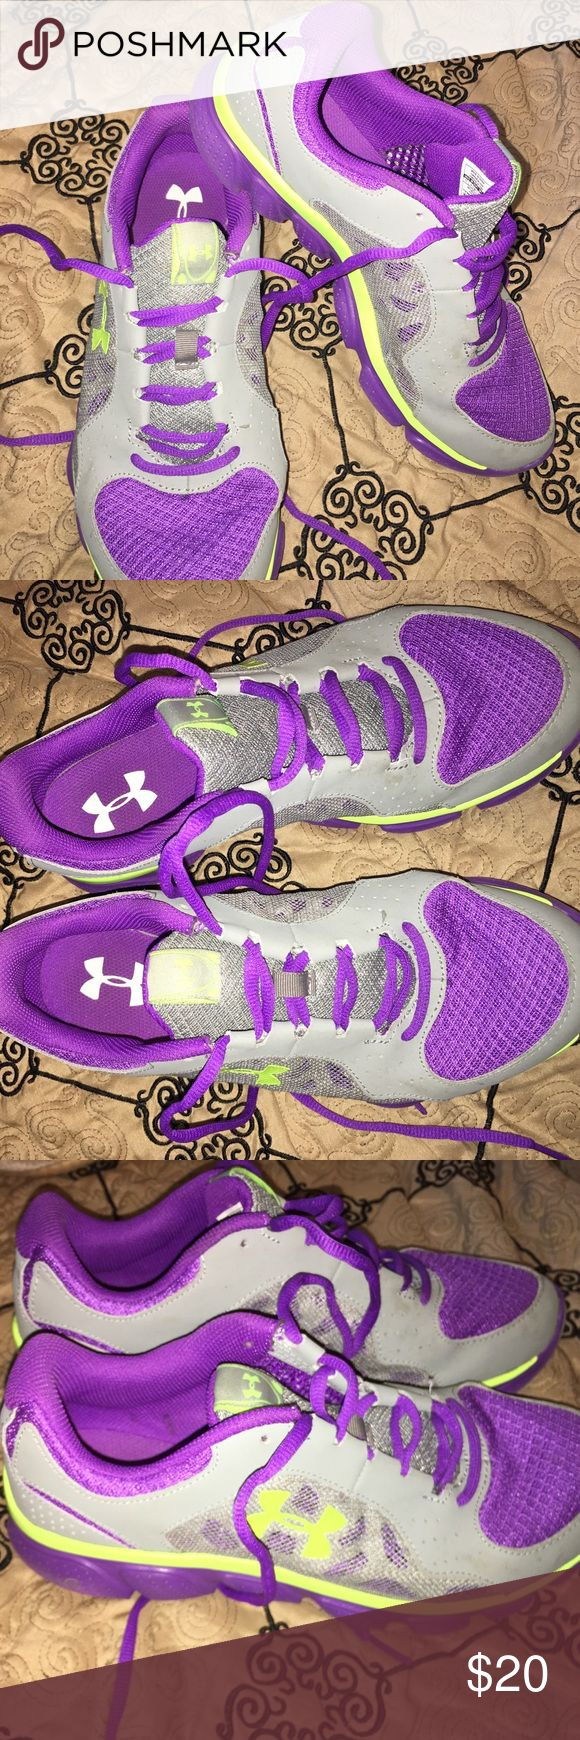 8.5 under armour women's shoes Under armour running sneakers worn twice. Like new. Under Armour Shoes Sneakers